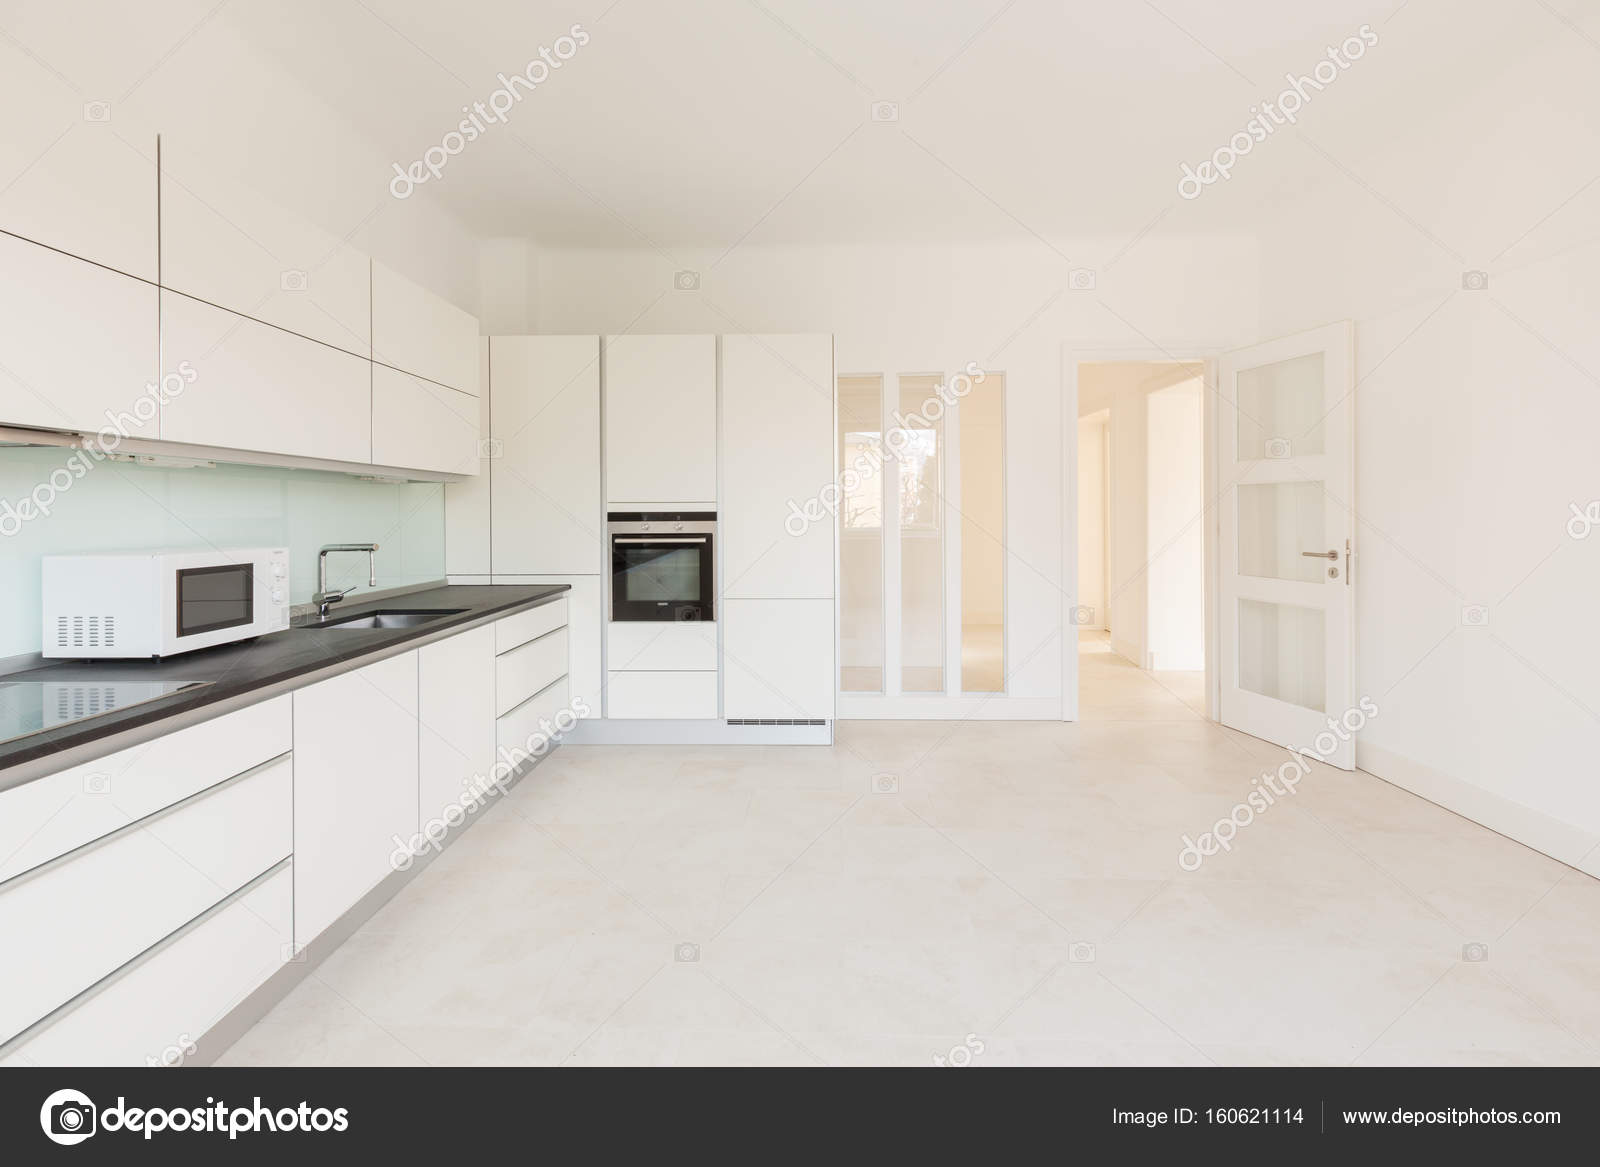 Interior Of Empty Kitchen Stock Photo